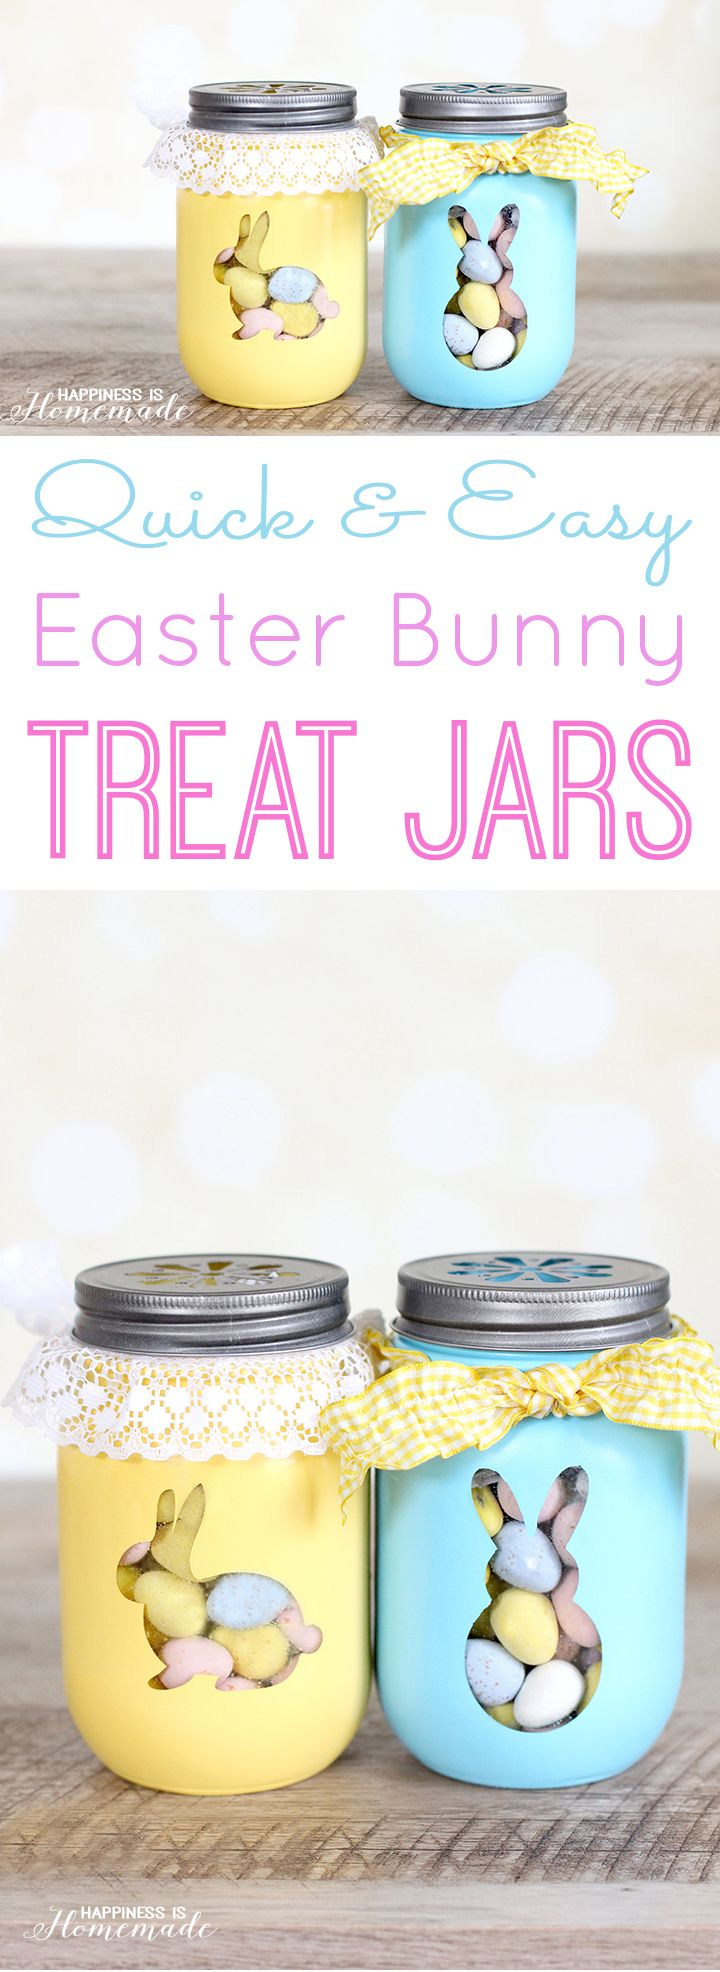 Easter Bunny Treat Jars - Happiness is Homemade